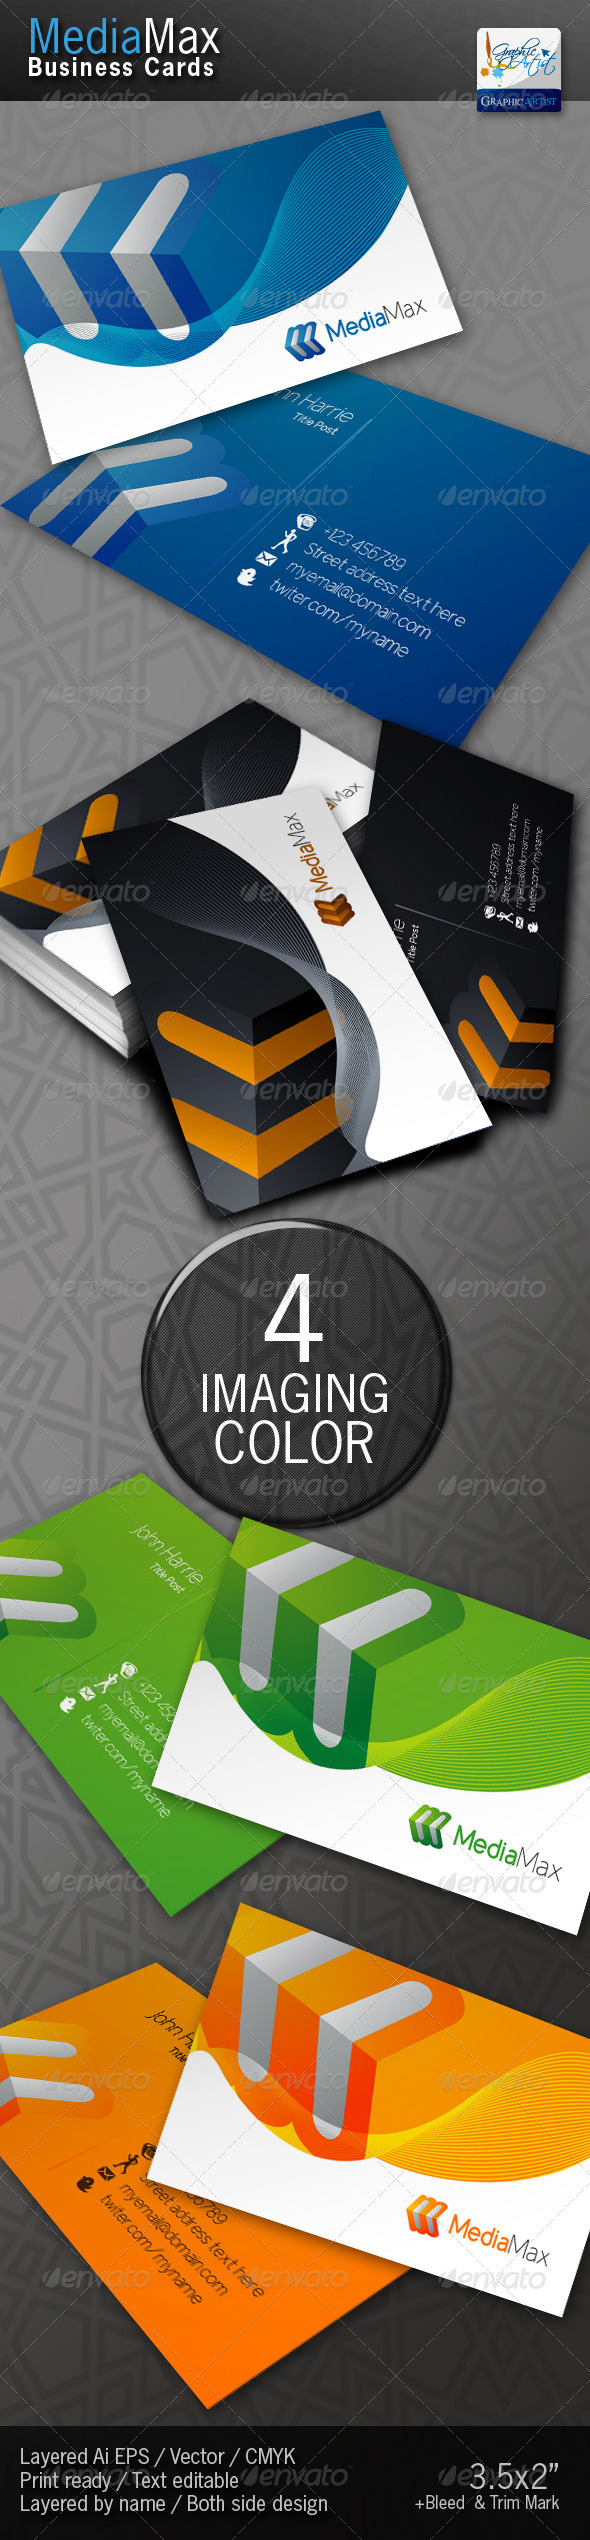 Graphic River MediaMax Business Cards Print Templates -  Business Cards  Corporate 1455621